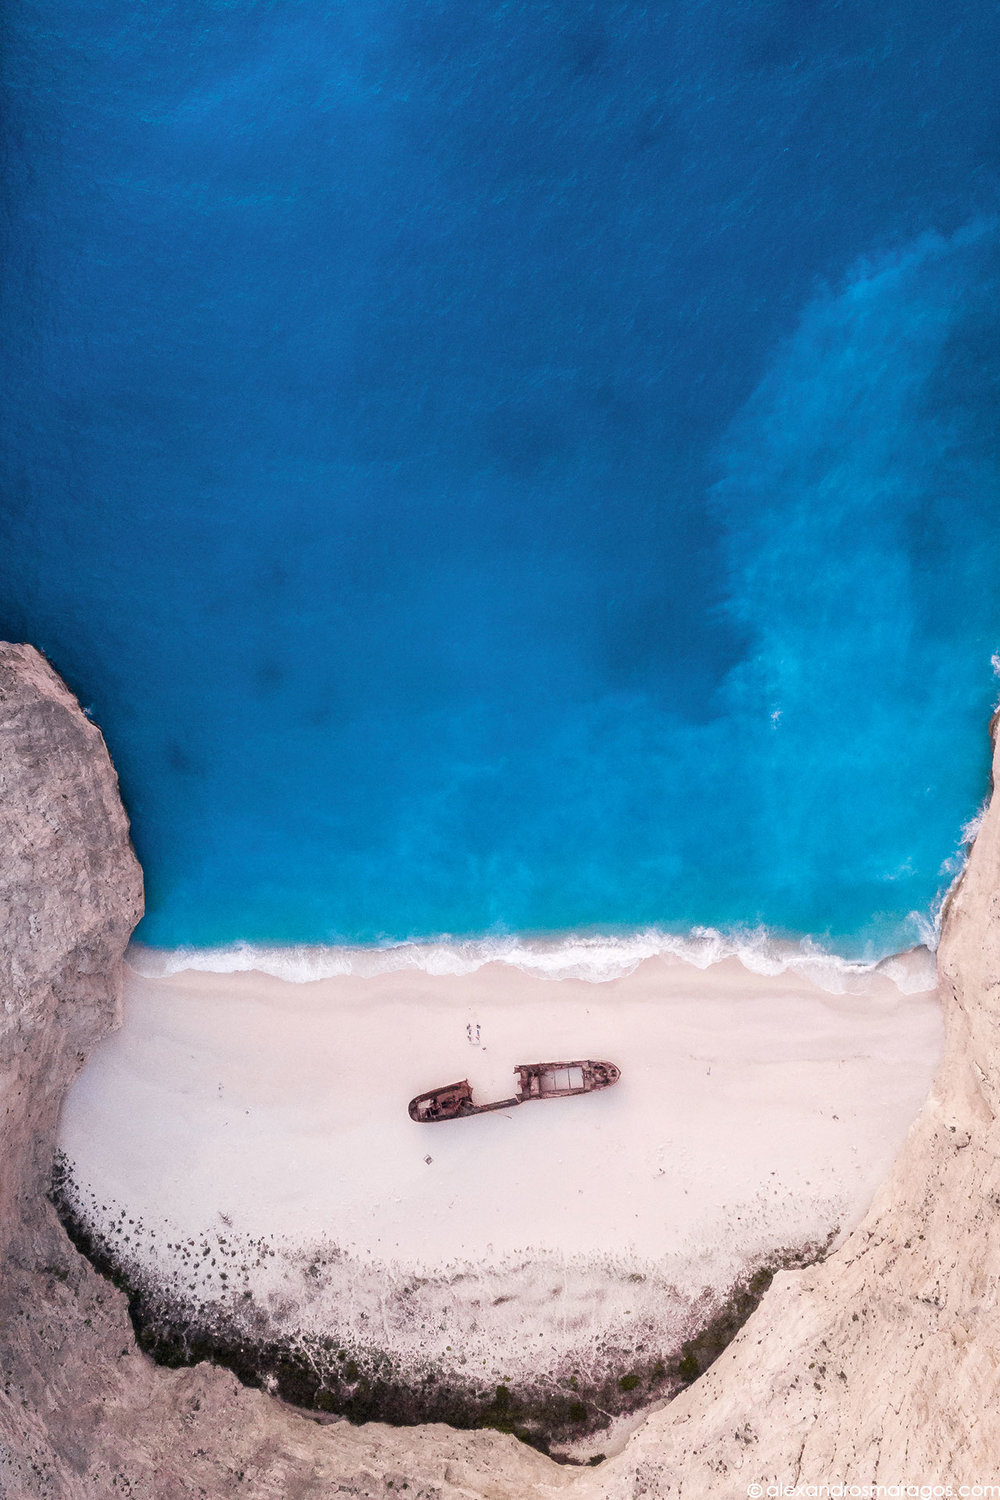 The Shipwreck Beach, Zakynthos, Greece | © Alexandros Maragos